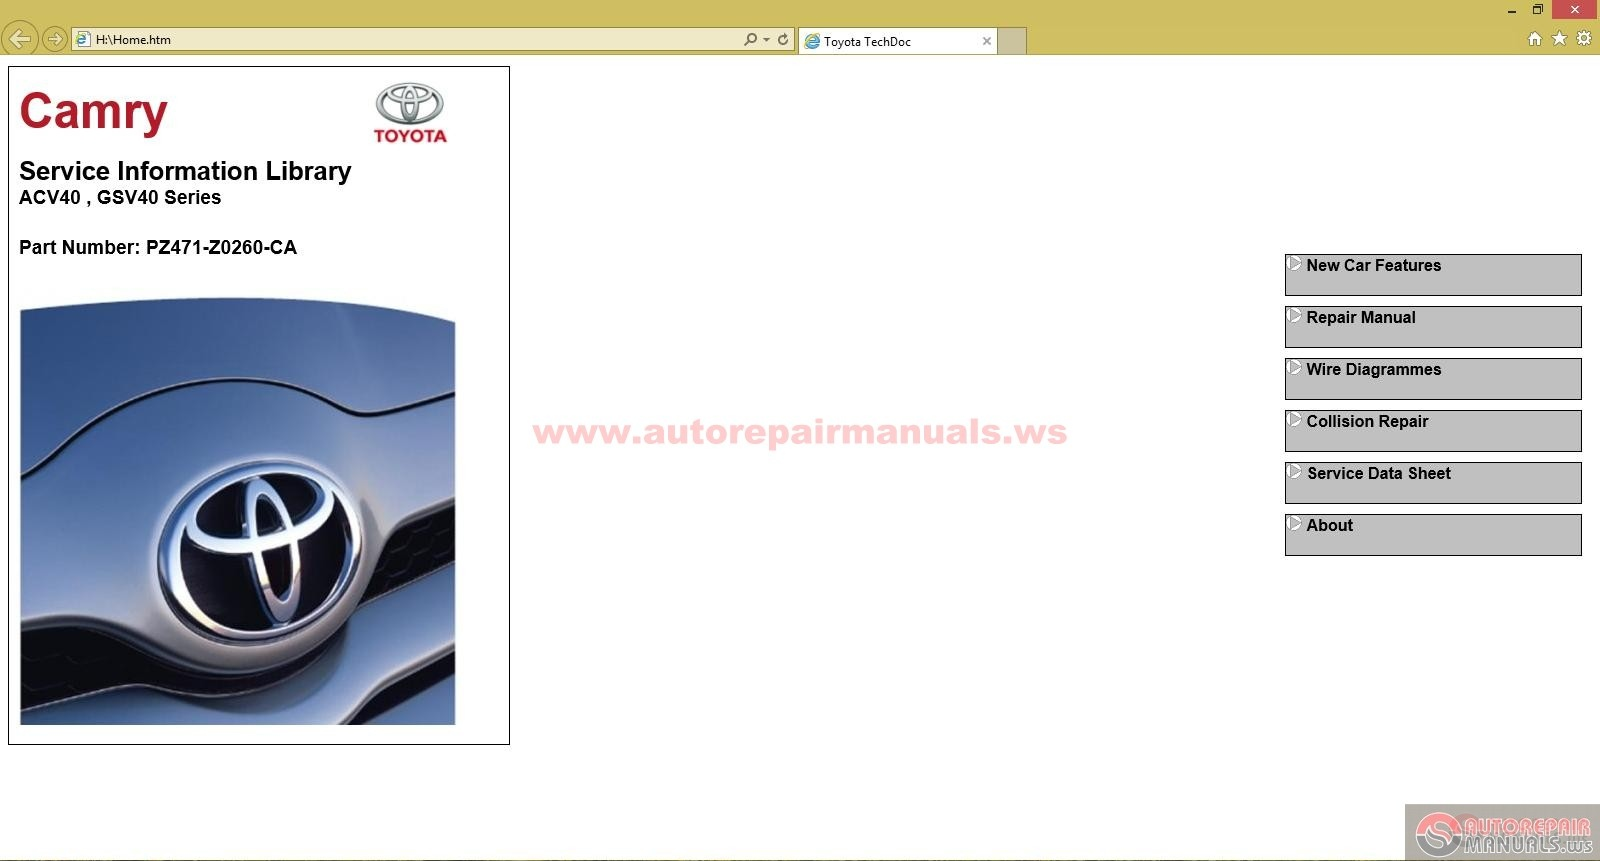 Toyota Acv40 Gsv40 Series Service Information Library